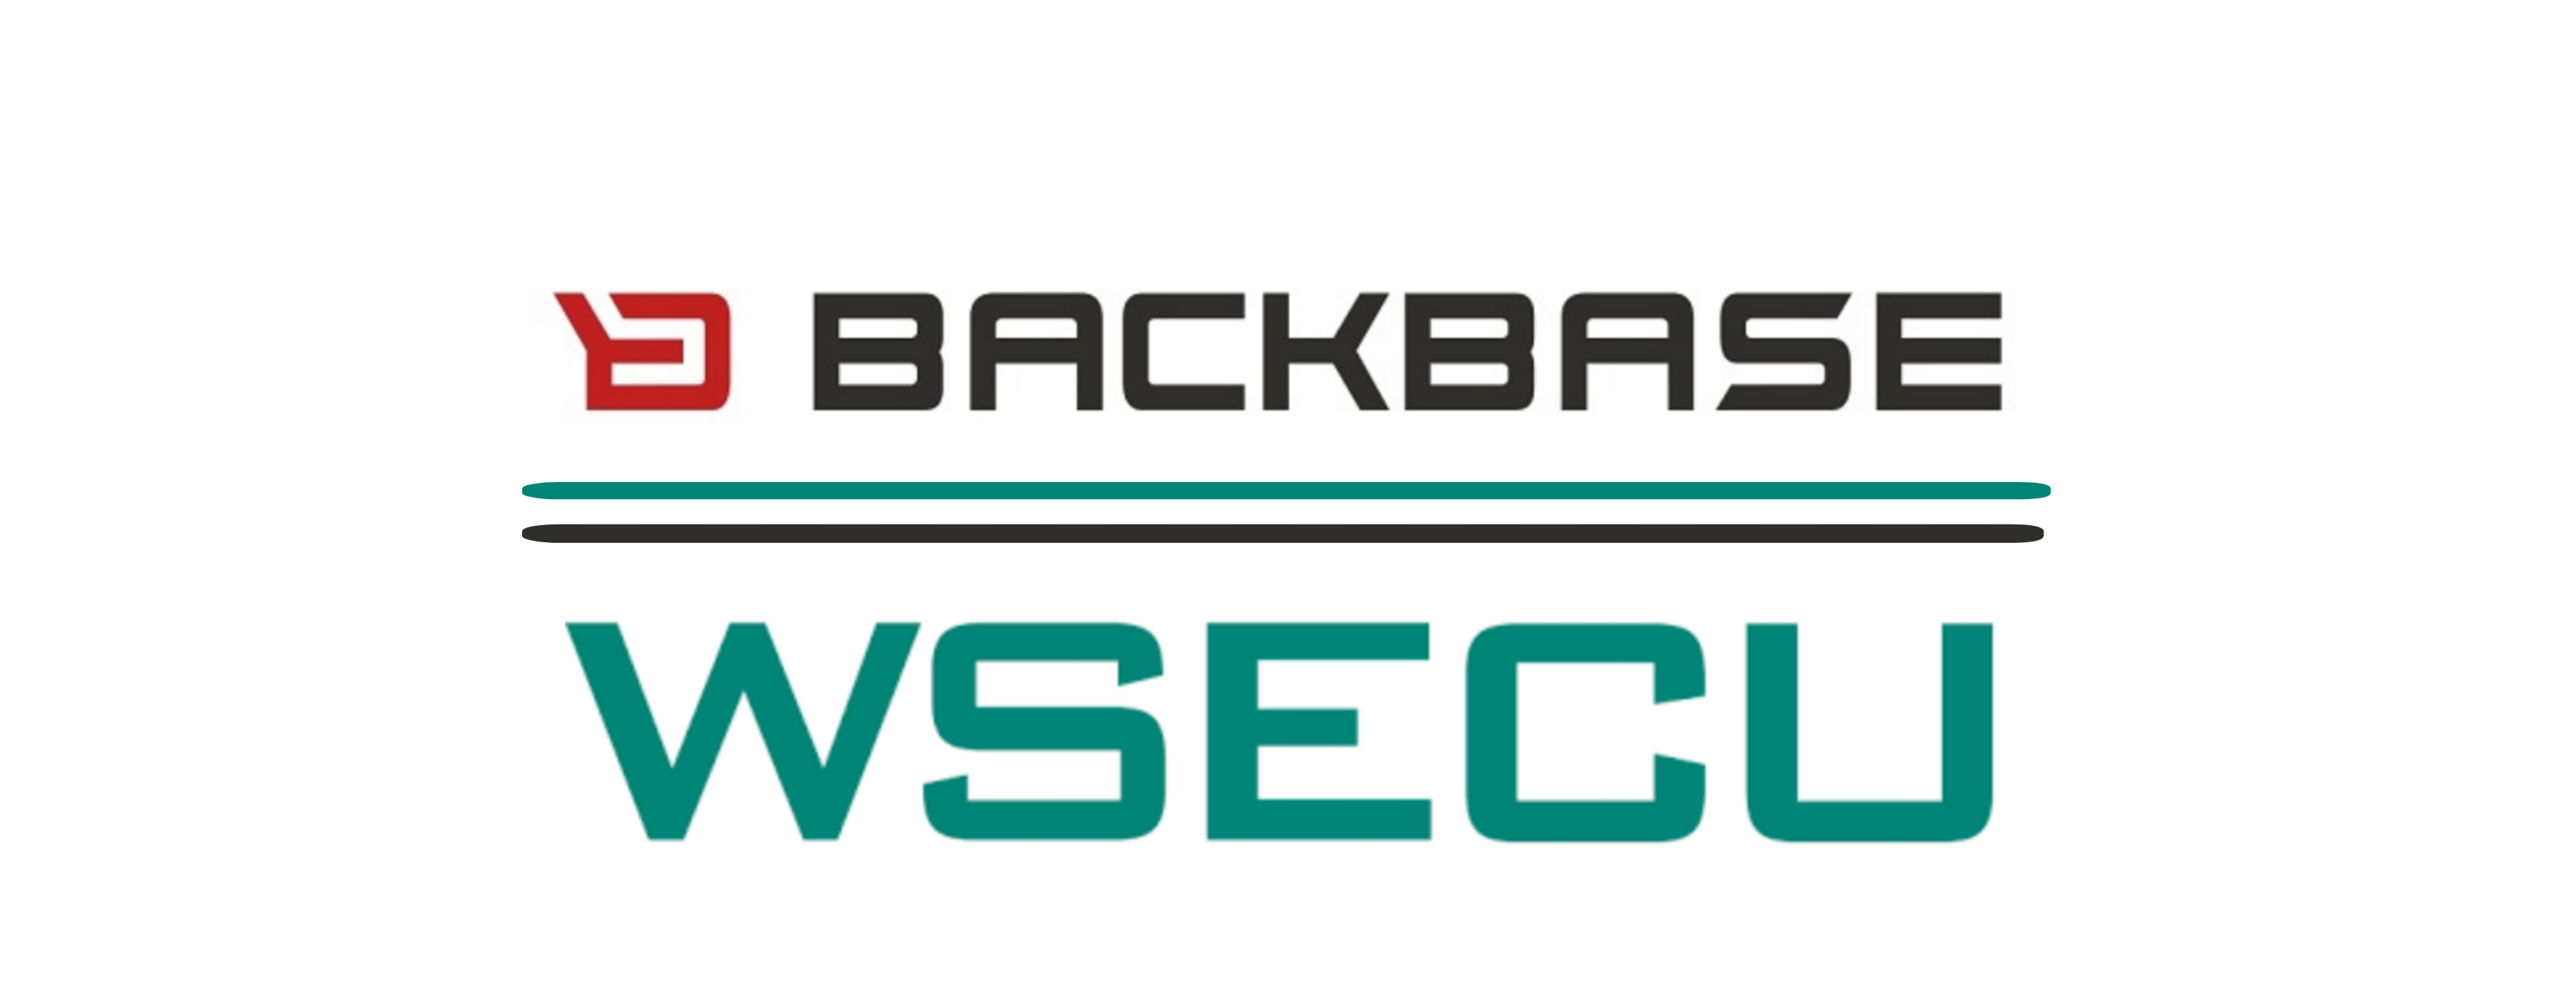 Backbase-Powered Mobile Banking App Drives Member Adoption and Satisfaction for WSECU